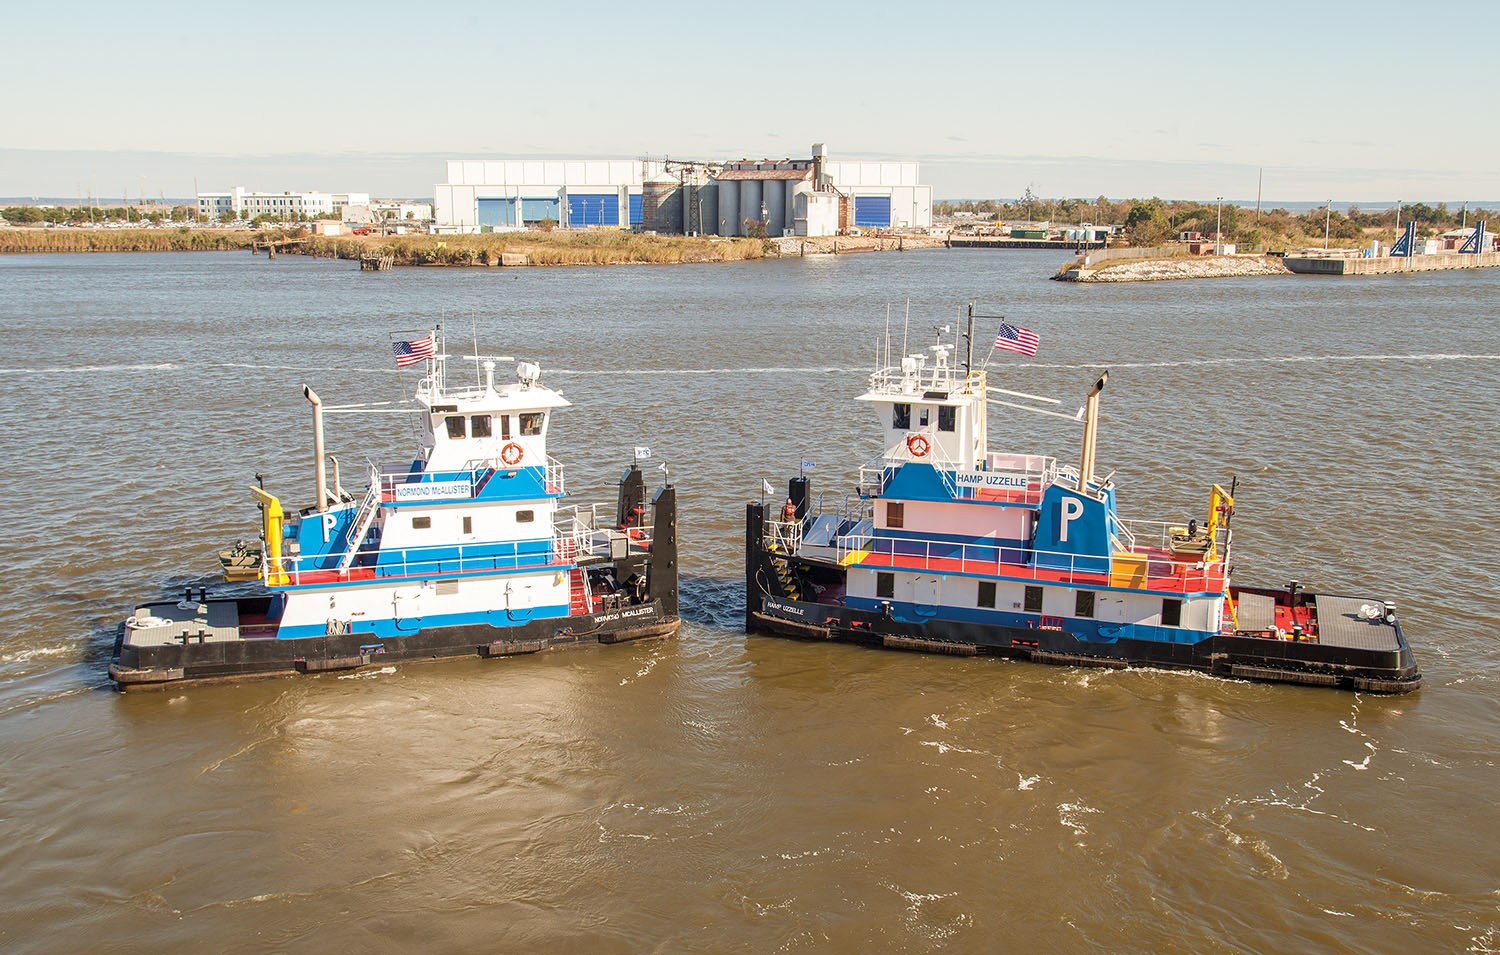 The Normond McAllister and Hamp Uzzelle are the newest additions to the Parker Towing fleet. (Photo by Frank McCormack)